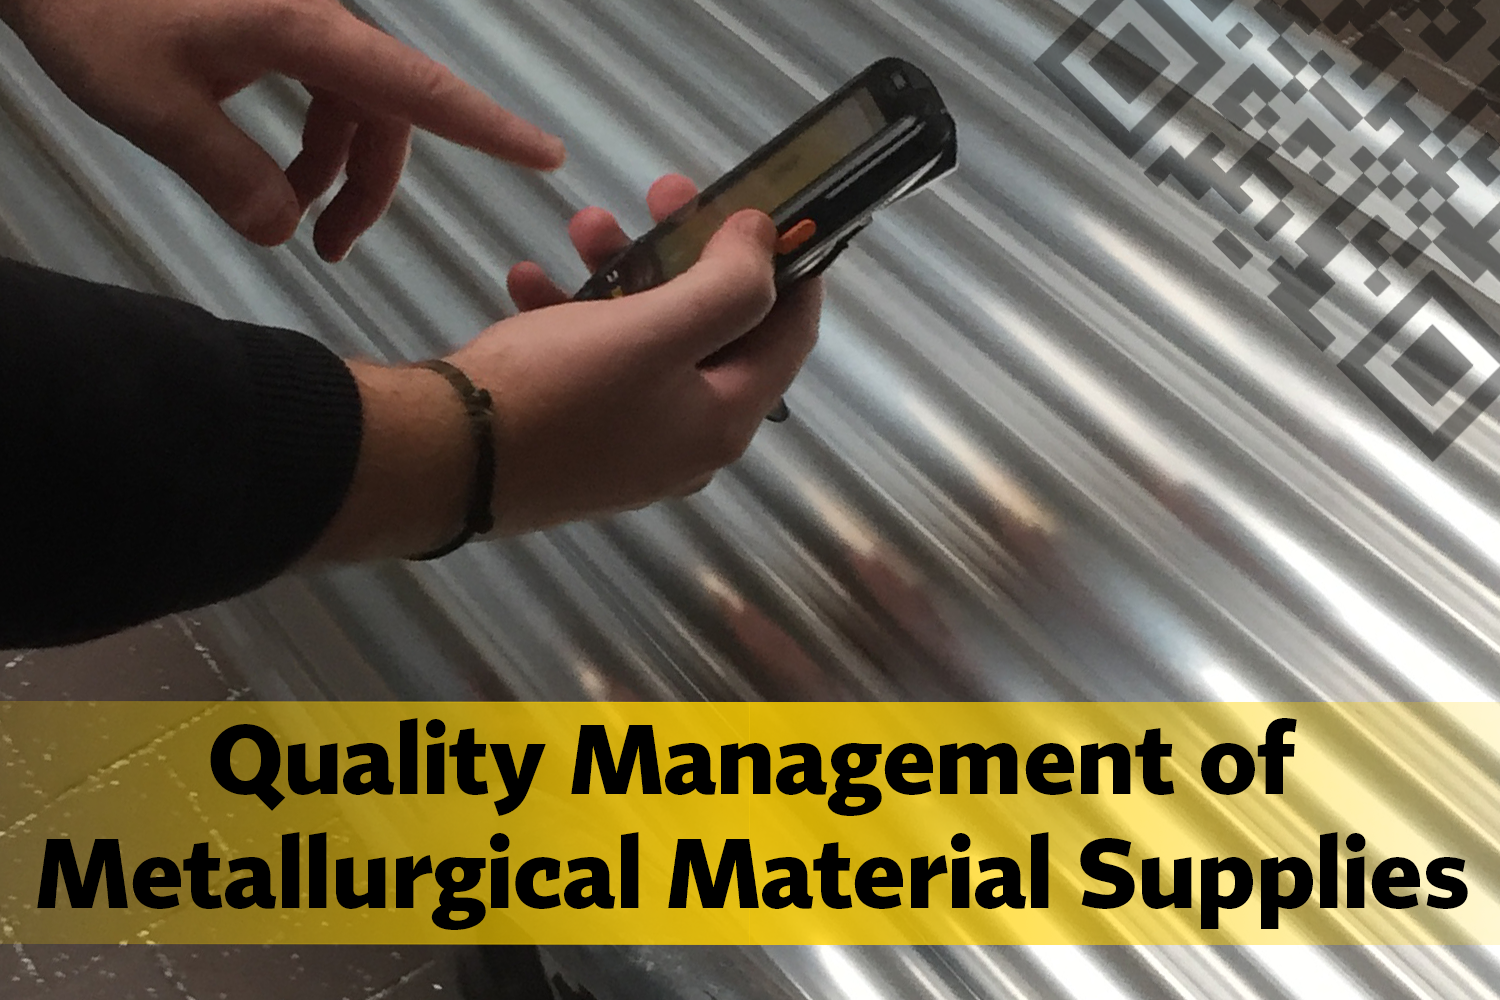 Quality Management of Metallurgical Material Supplies